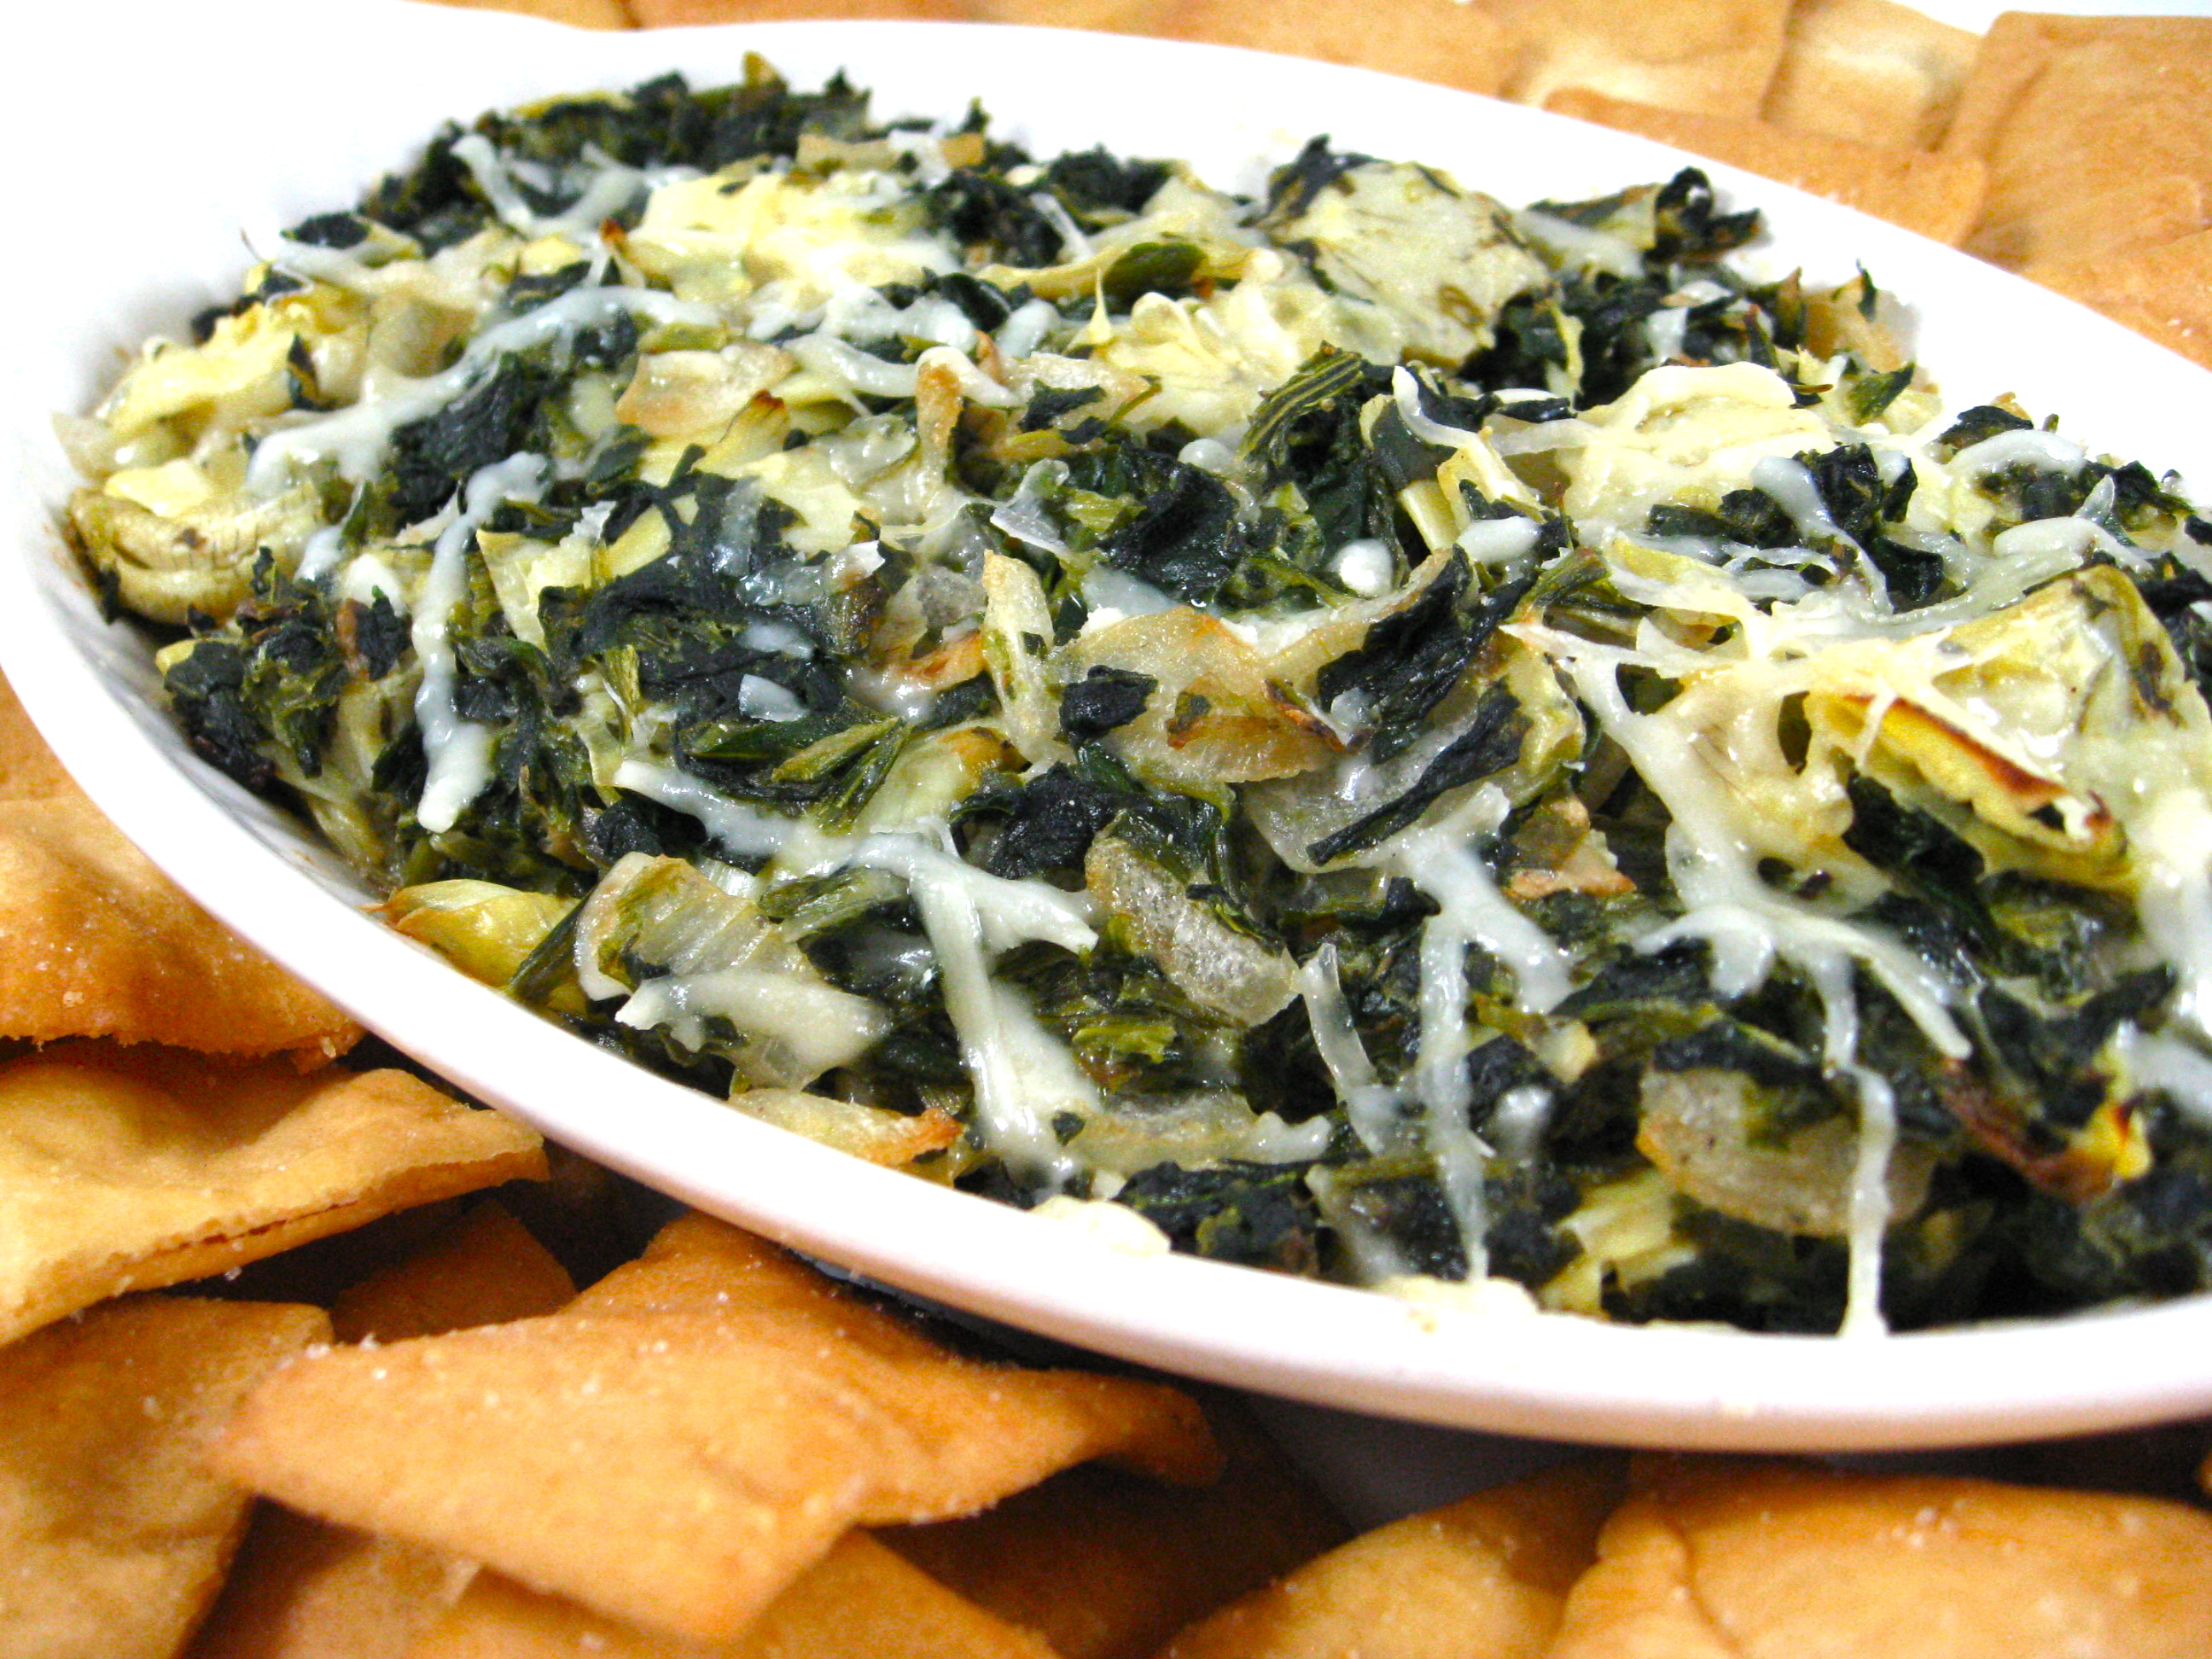 Skinny Hot Spinach and Artichoke Dip